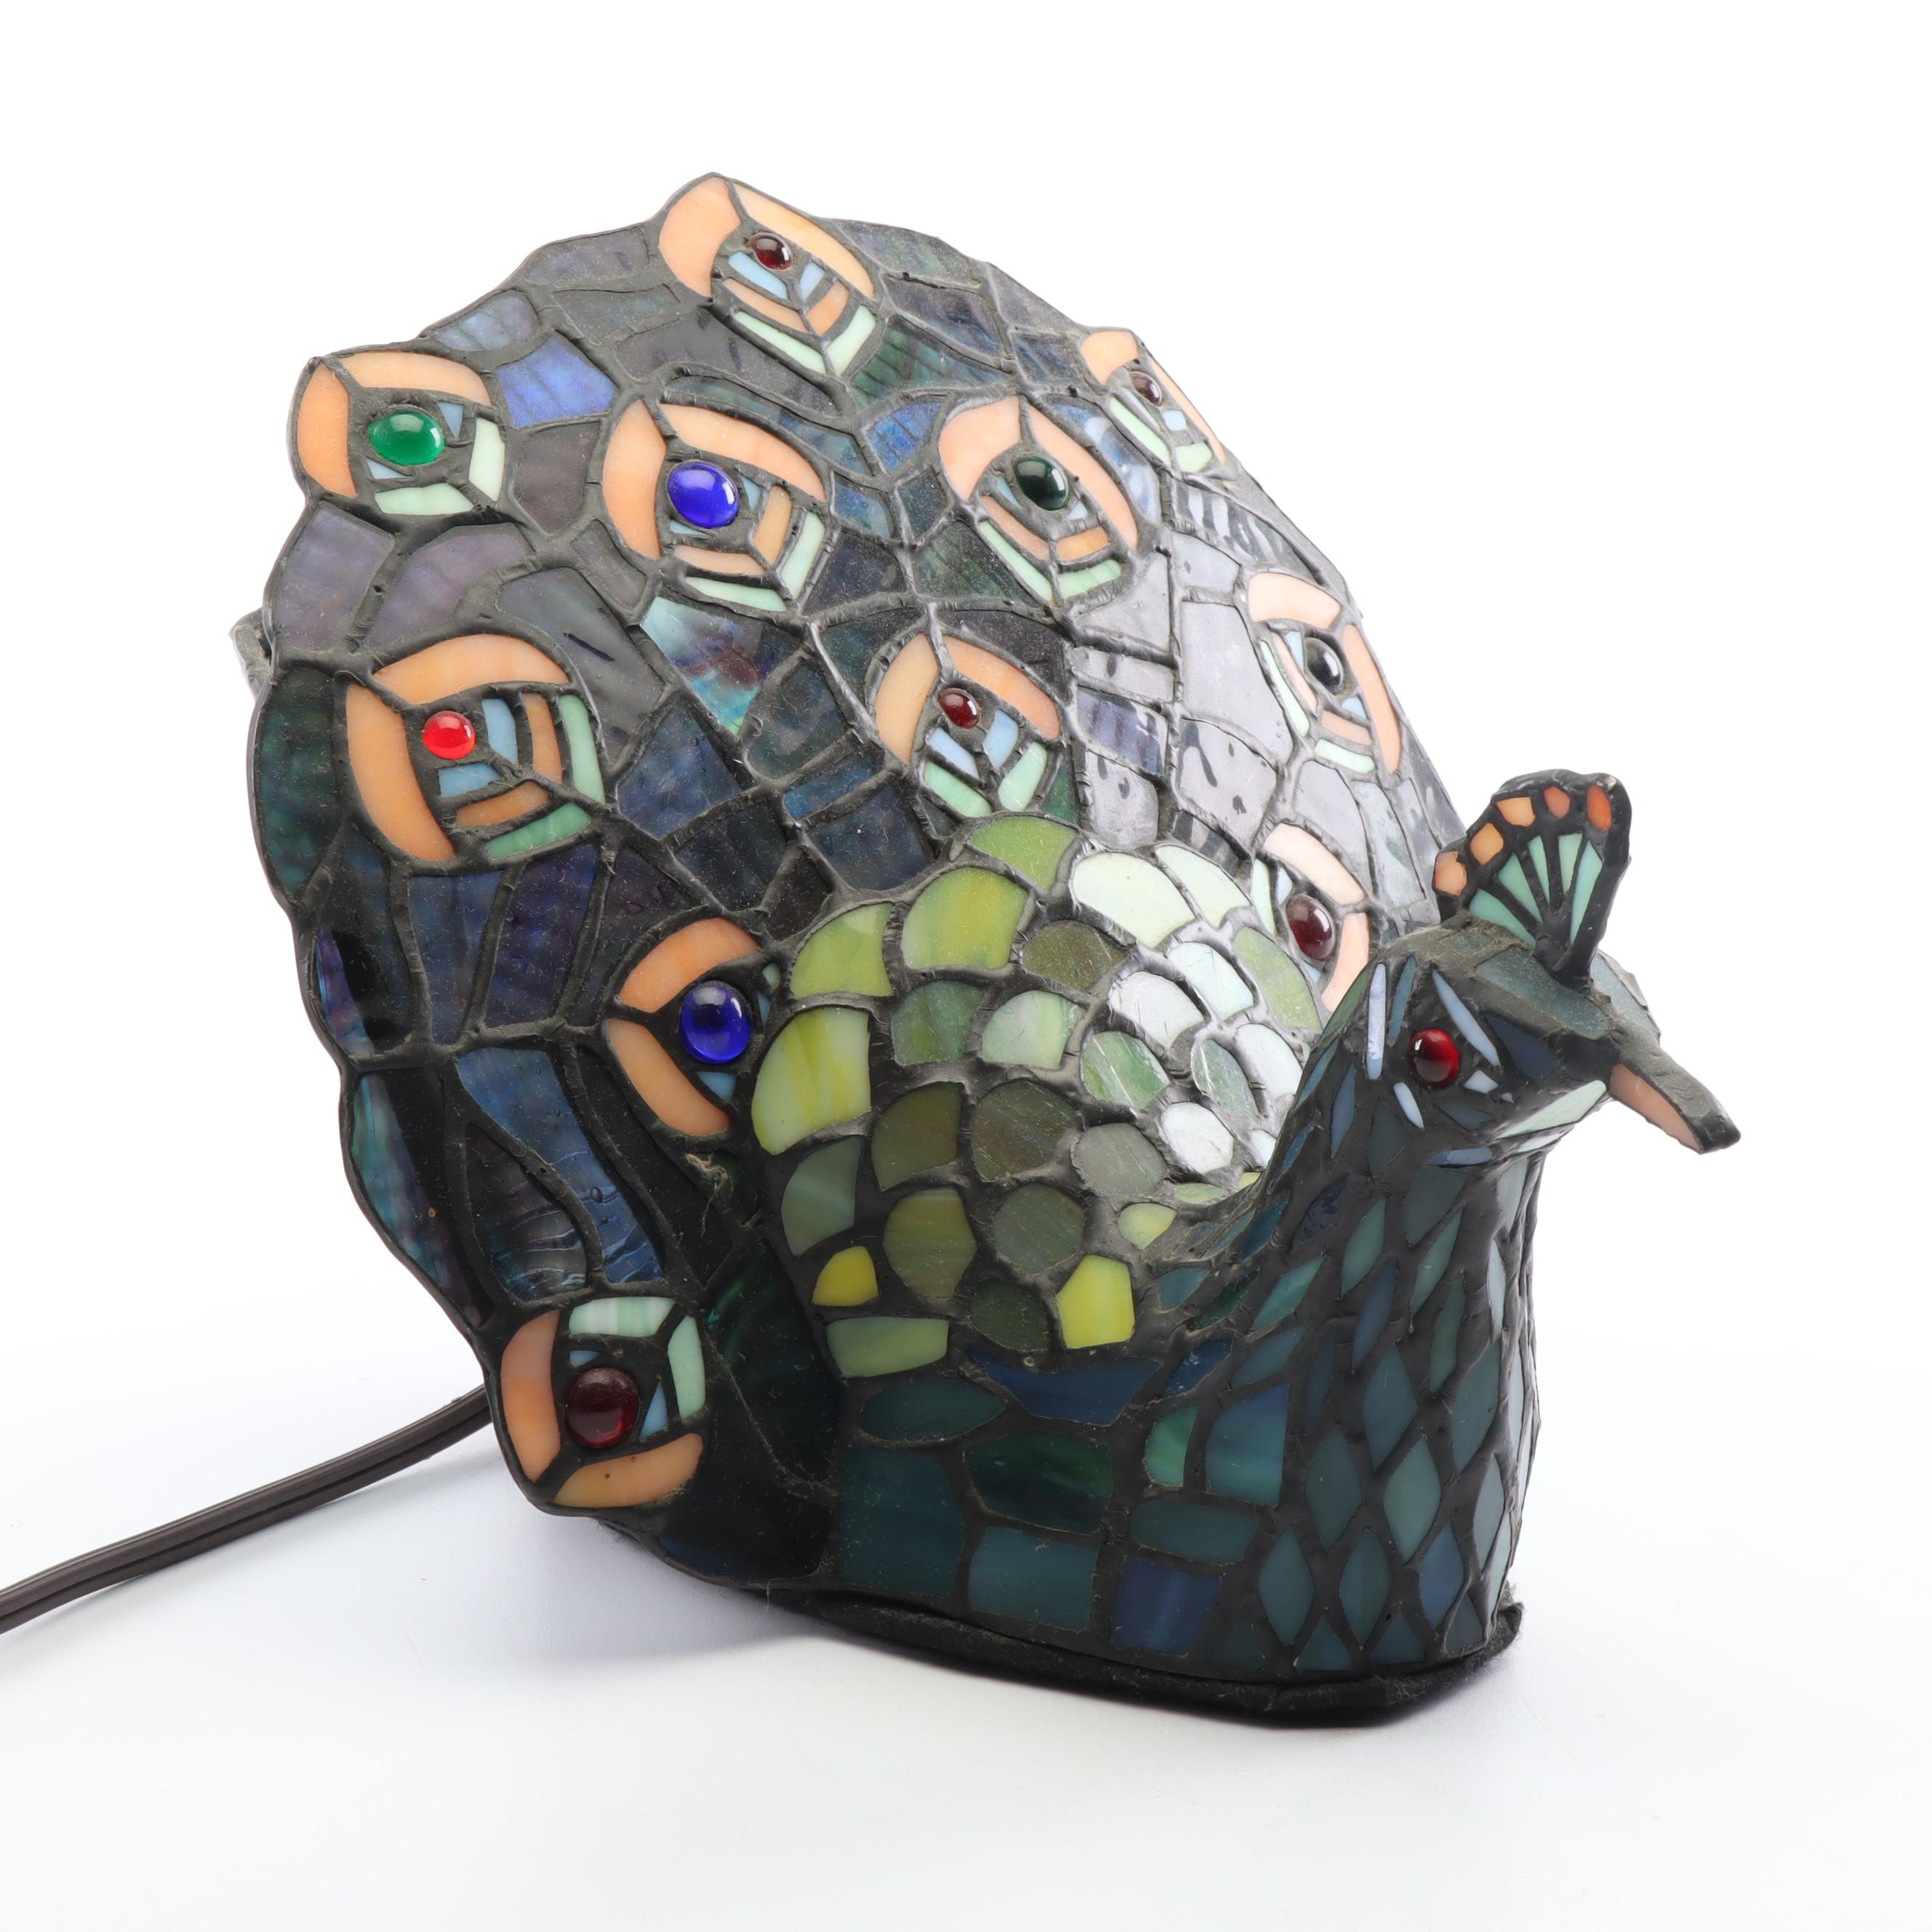 Stained-Glass Style Peacock Lamp, Contemporary